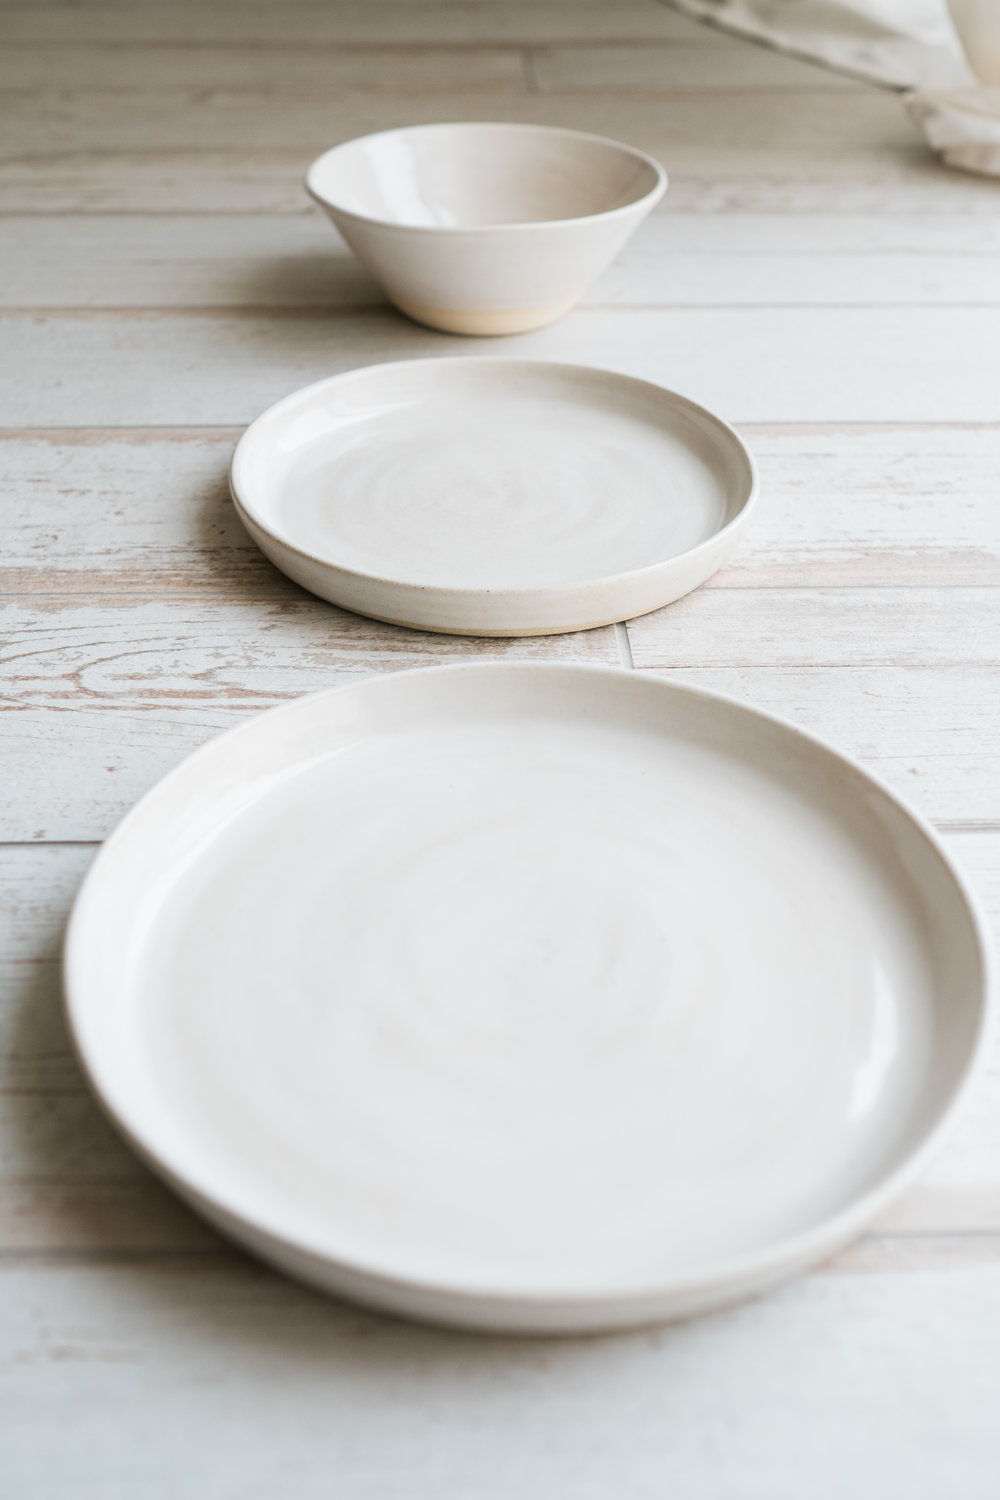 Purchase by the Piece - Plates, bowls and tumblers available separately